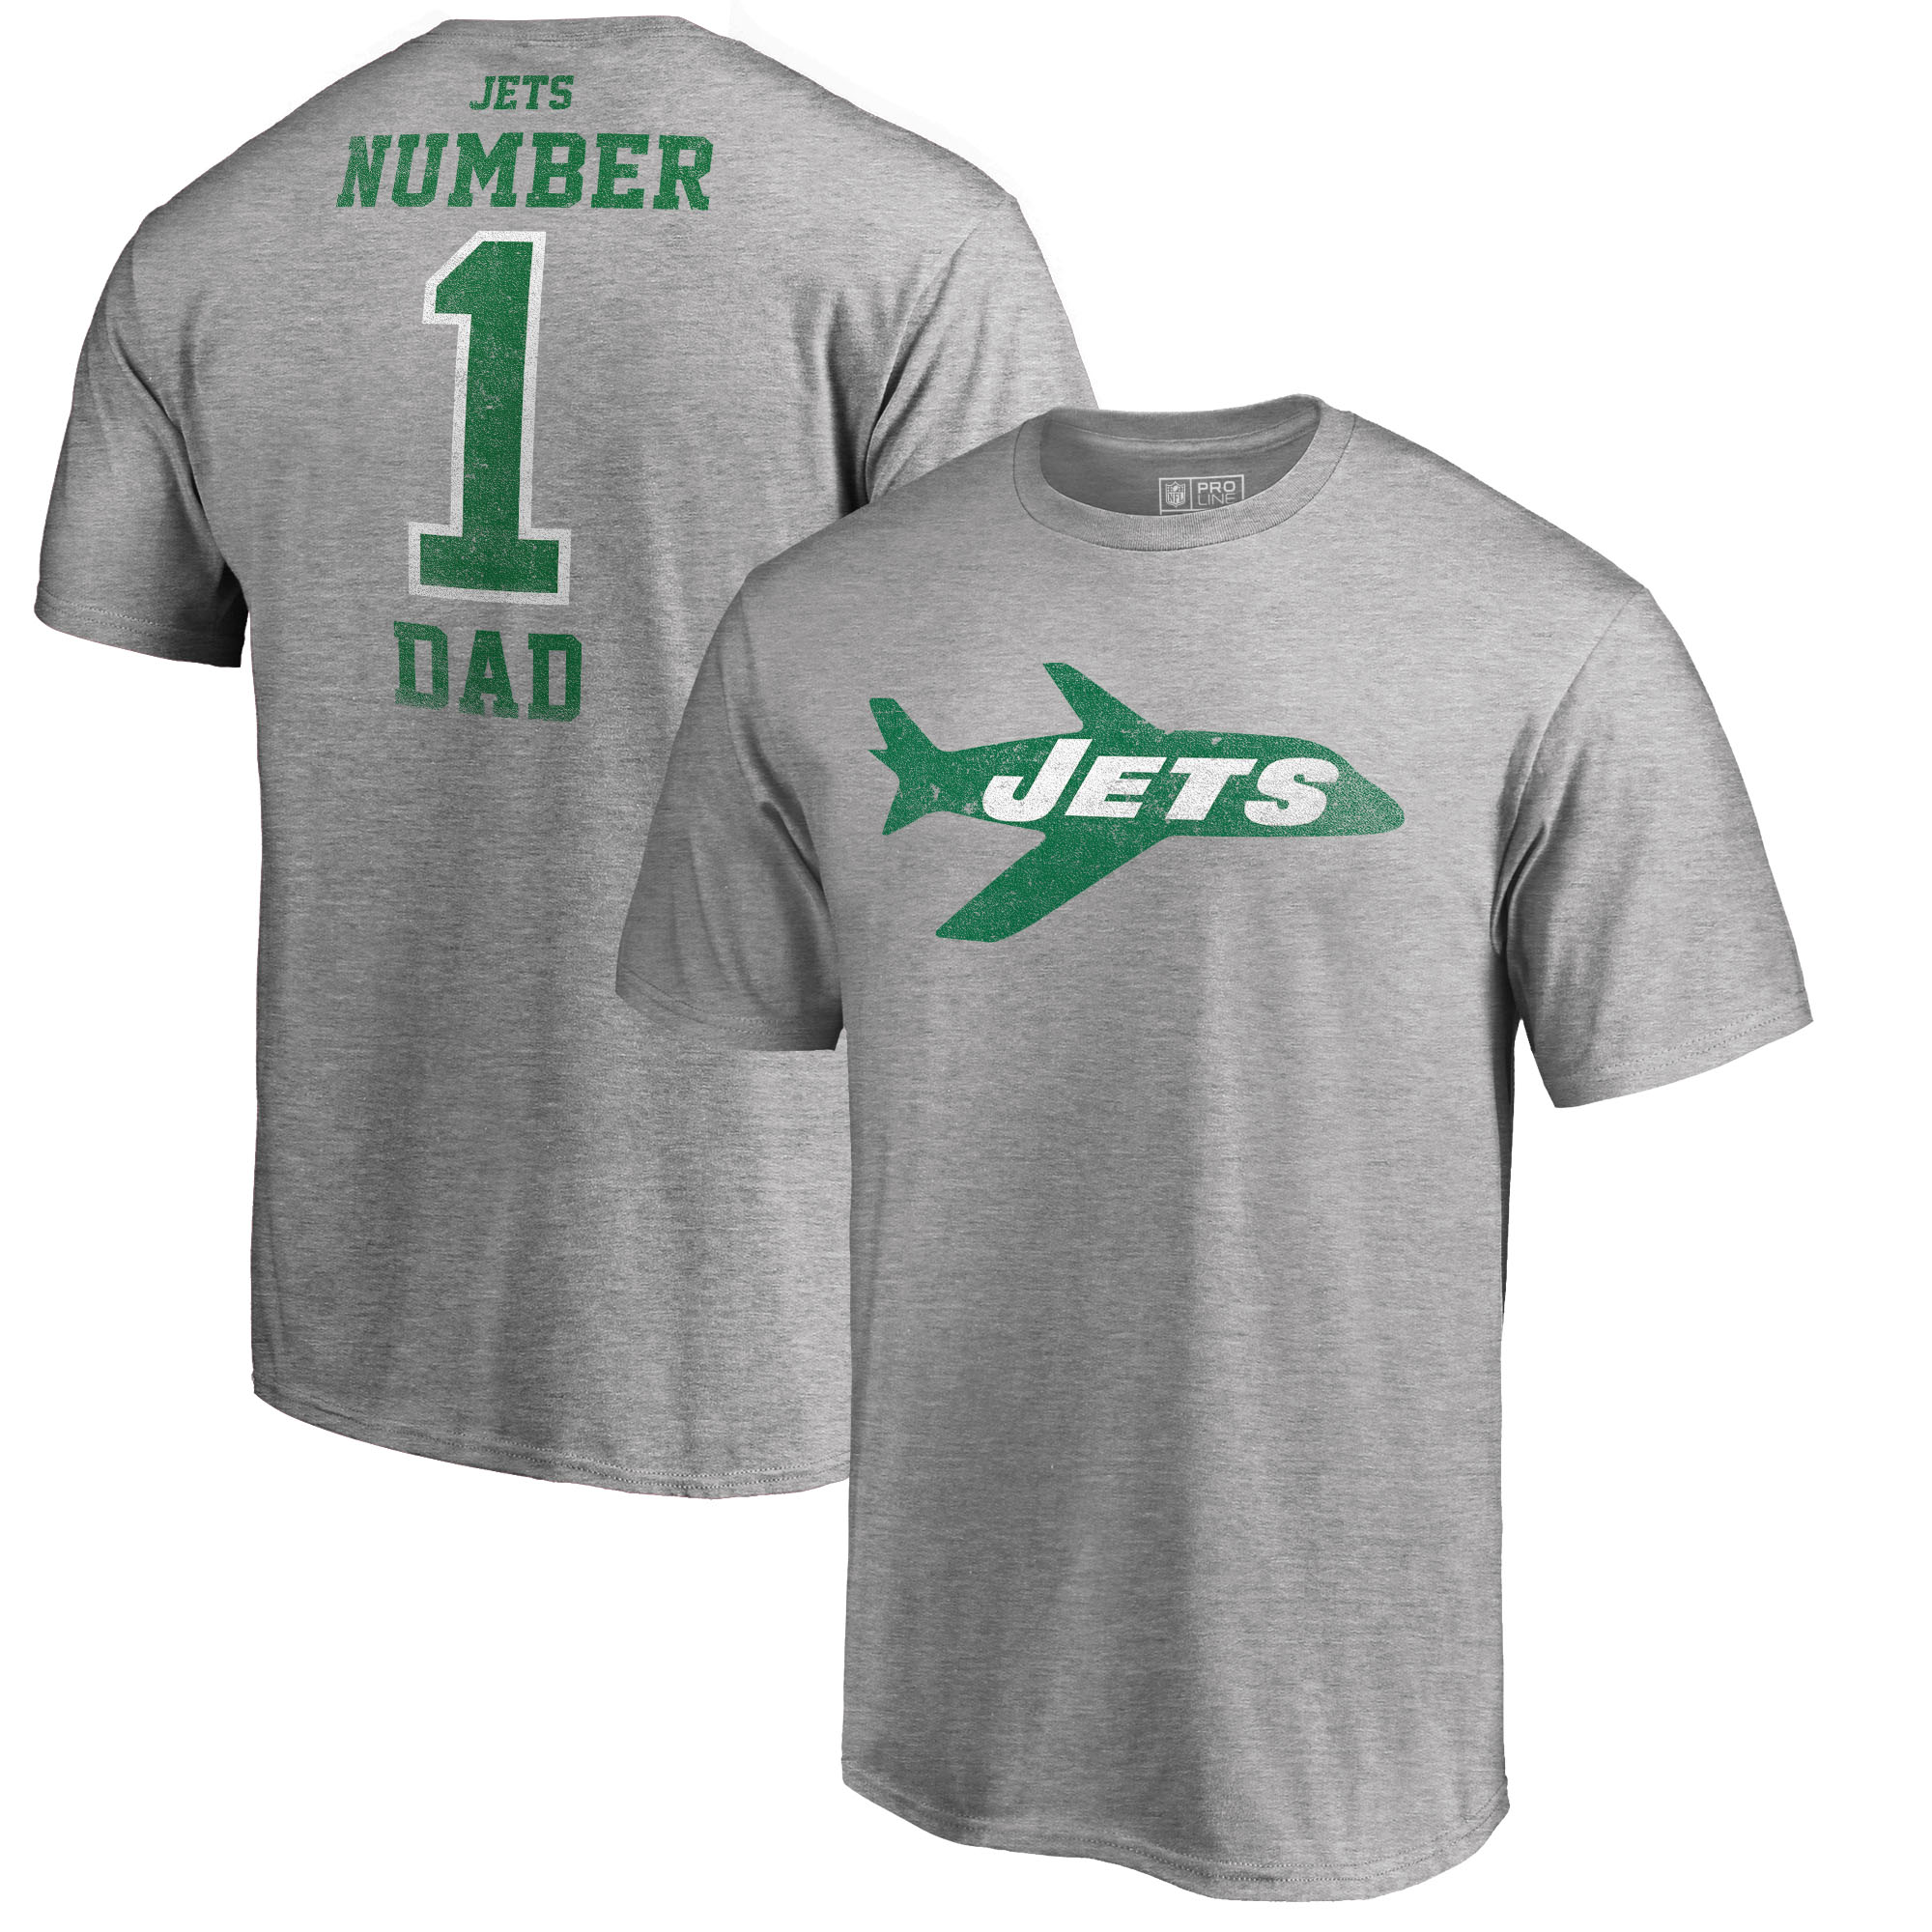 New York Jets NFL Pro Line by Fanatics Branded Big and Tall Greatest Dad Retro Tri-Blend T-Shirt - Heathered Gray